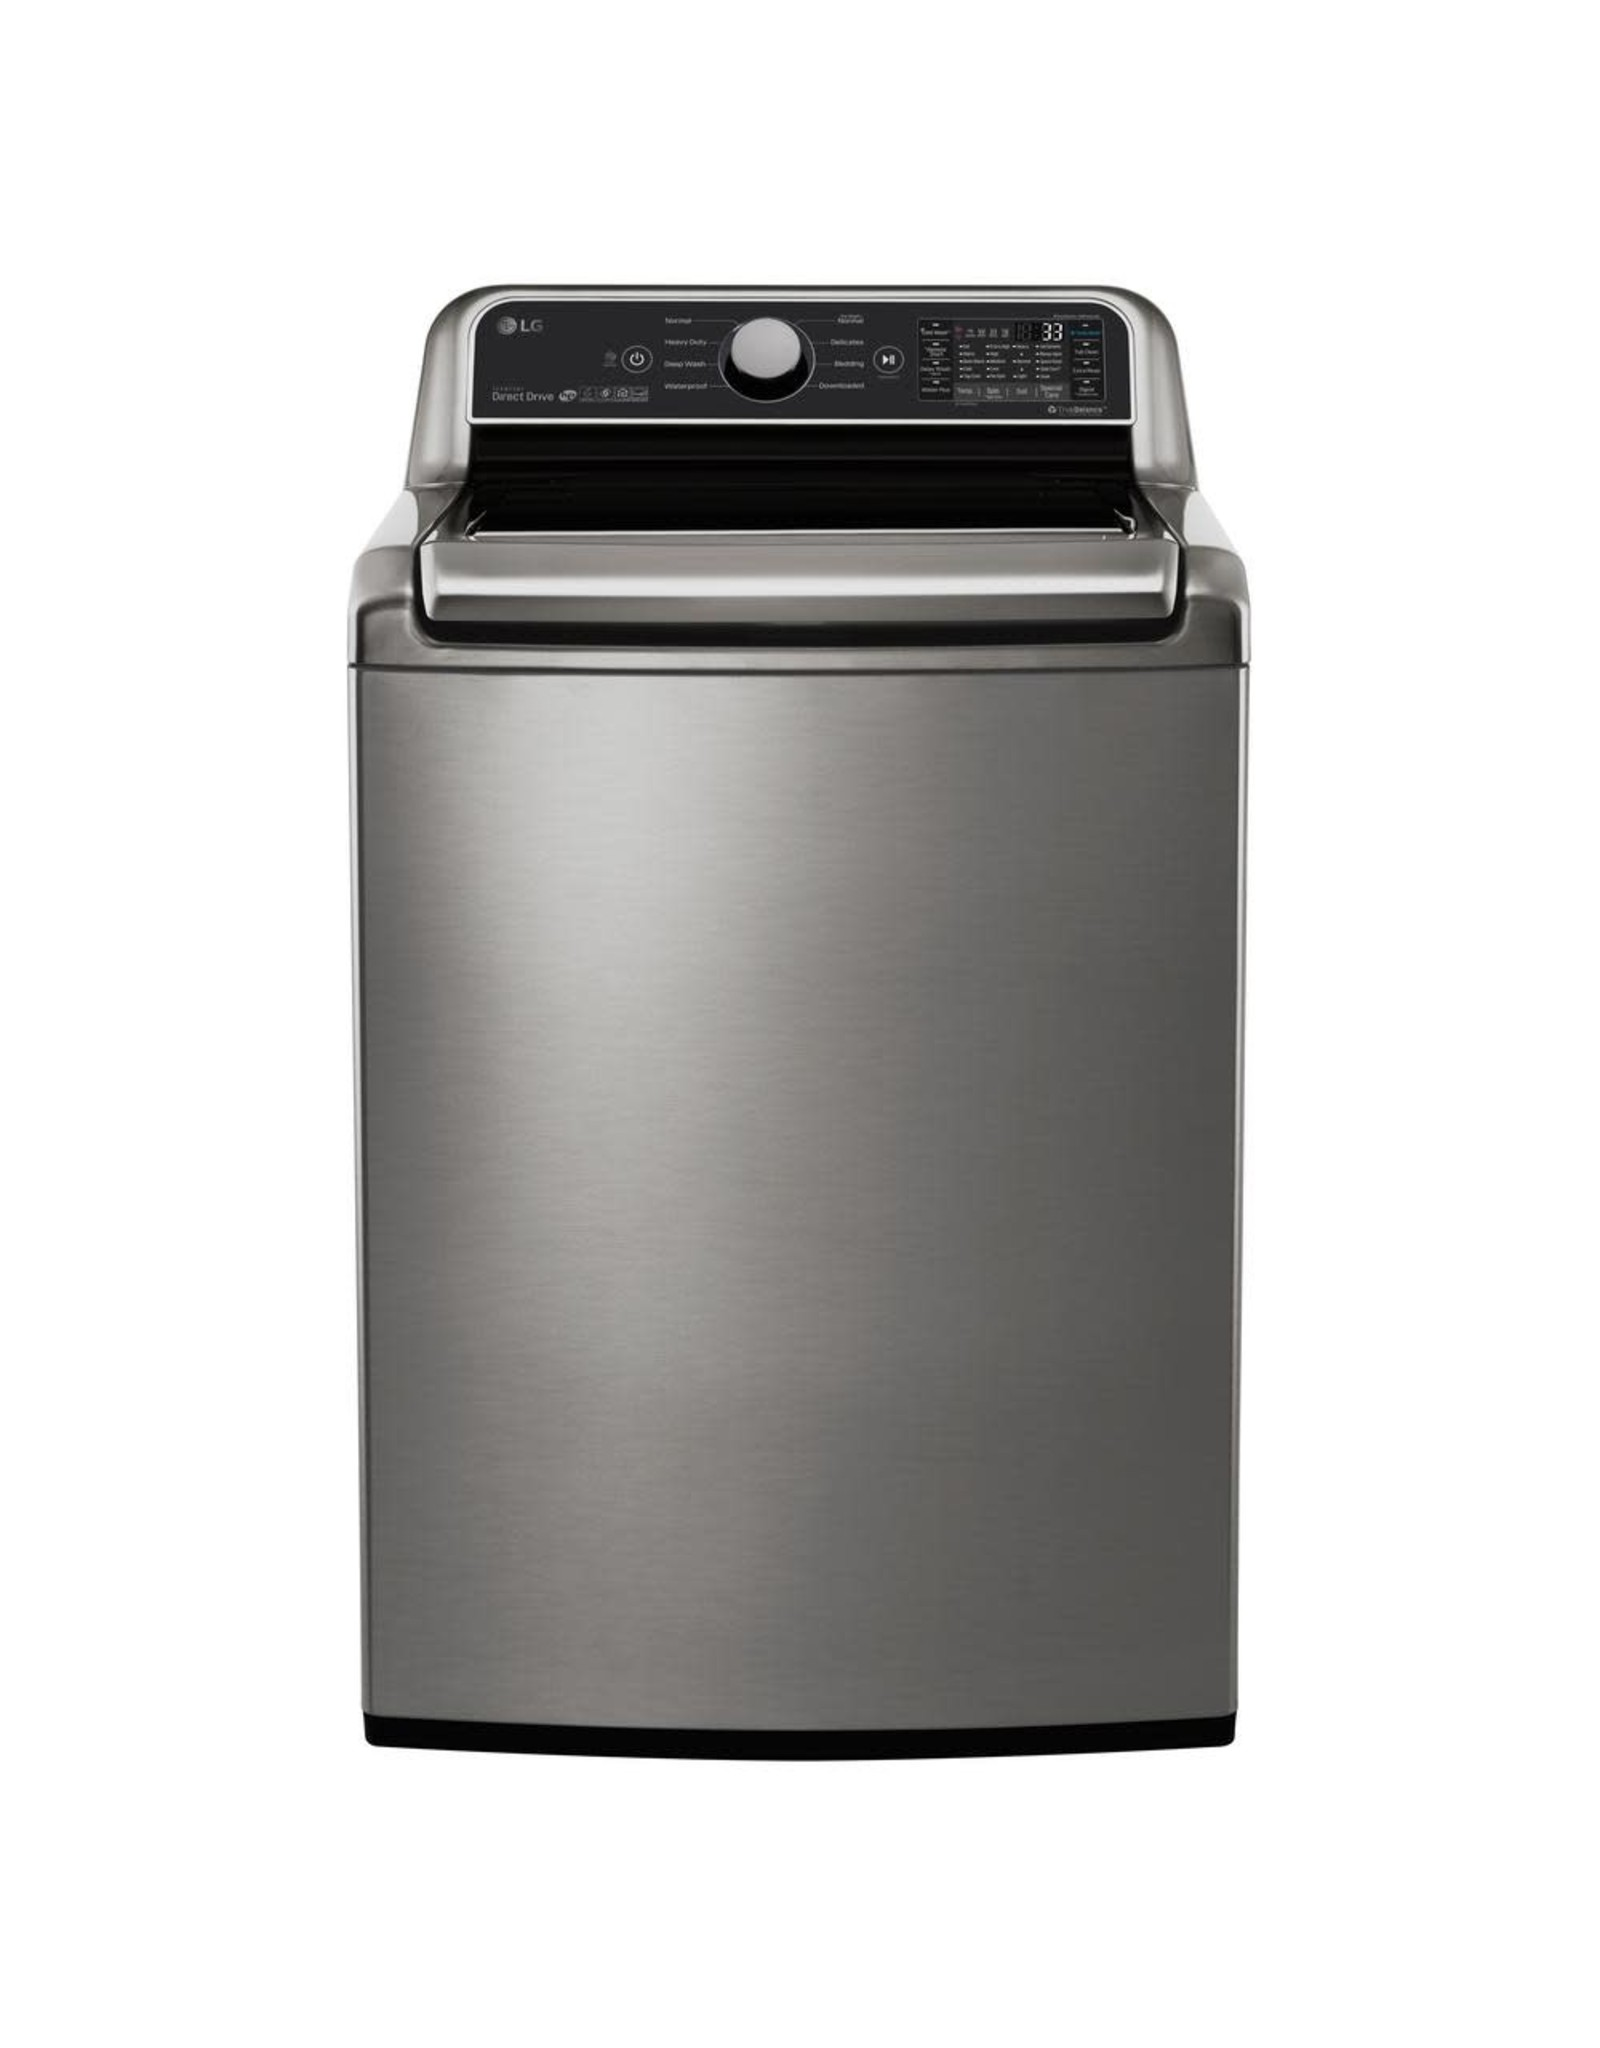 LG Electronics WT7300CV 5.0 cu. ft. HE Mega Capacity Smart Top Load Washer w/ TurboWash3D and Wi-Fi Enabled in Graphite Steel, ENERGY STAR